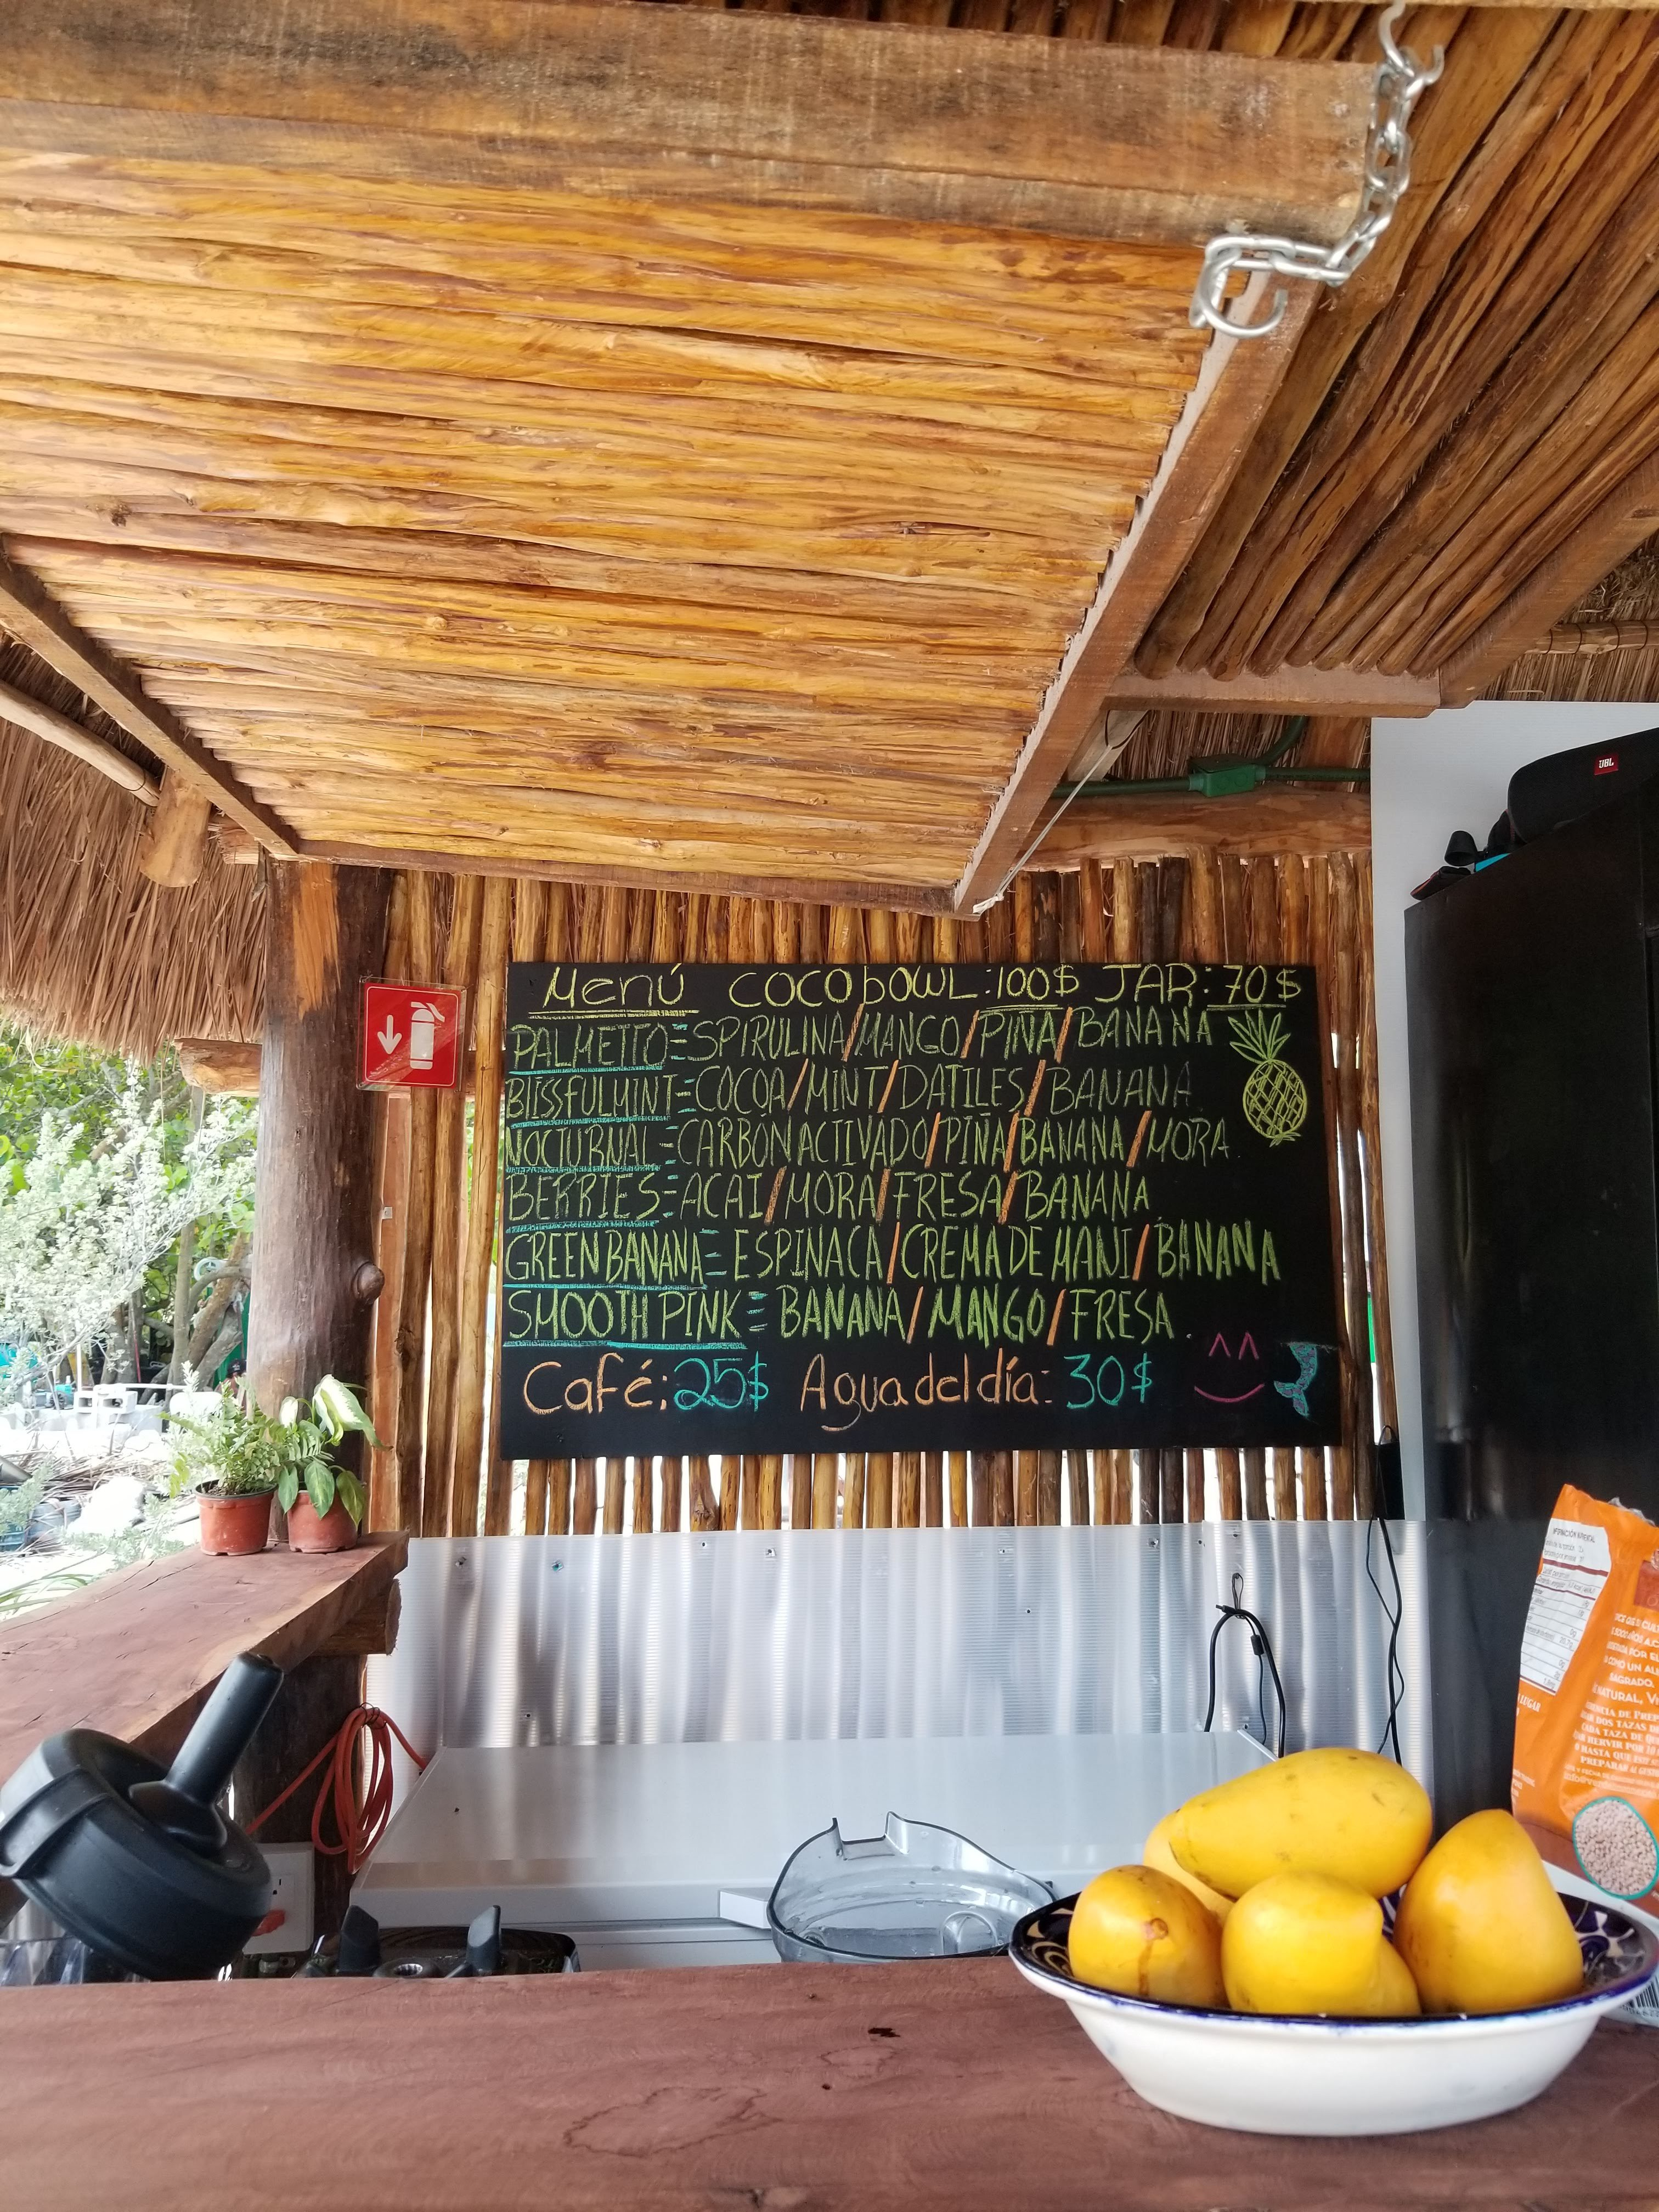 an open-air smoothie spot has a menu written in chalk. there are six different smoothies featured all with an assortment of island fruits like banana, mango, and coconut.